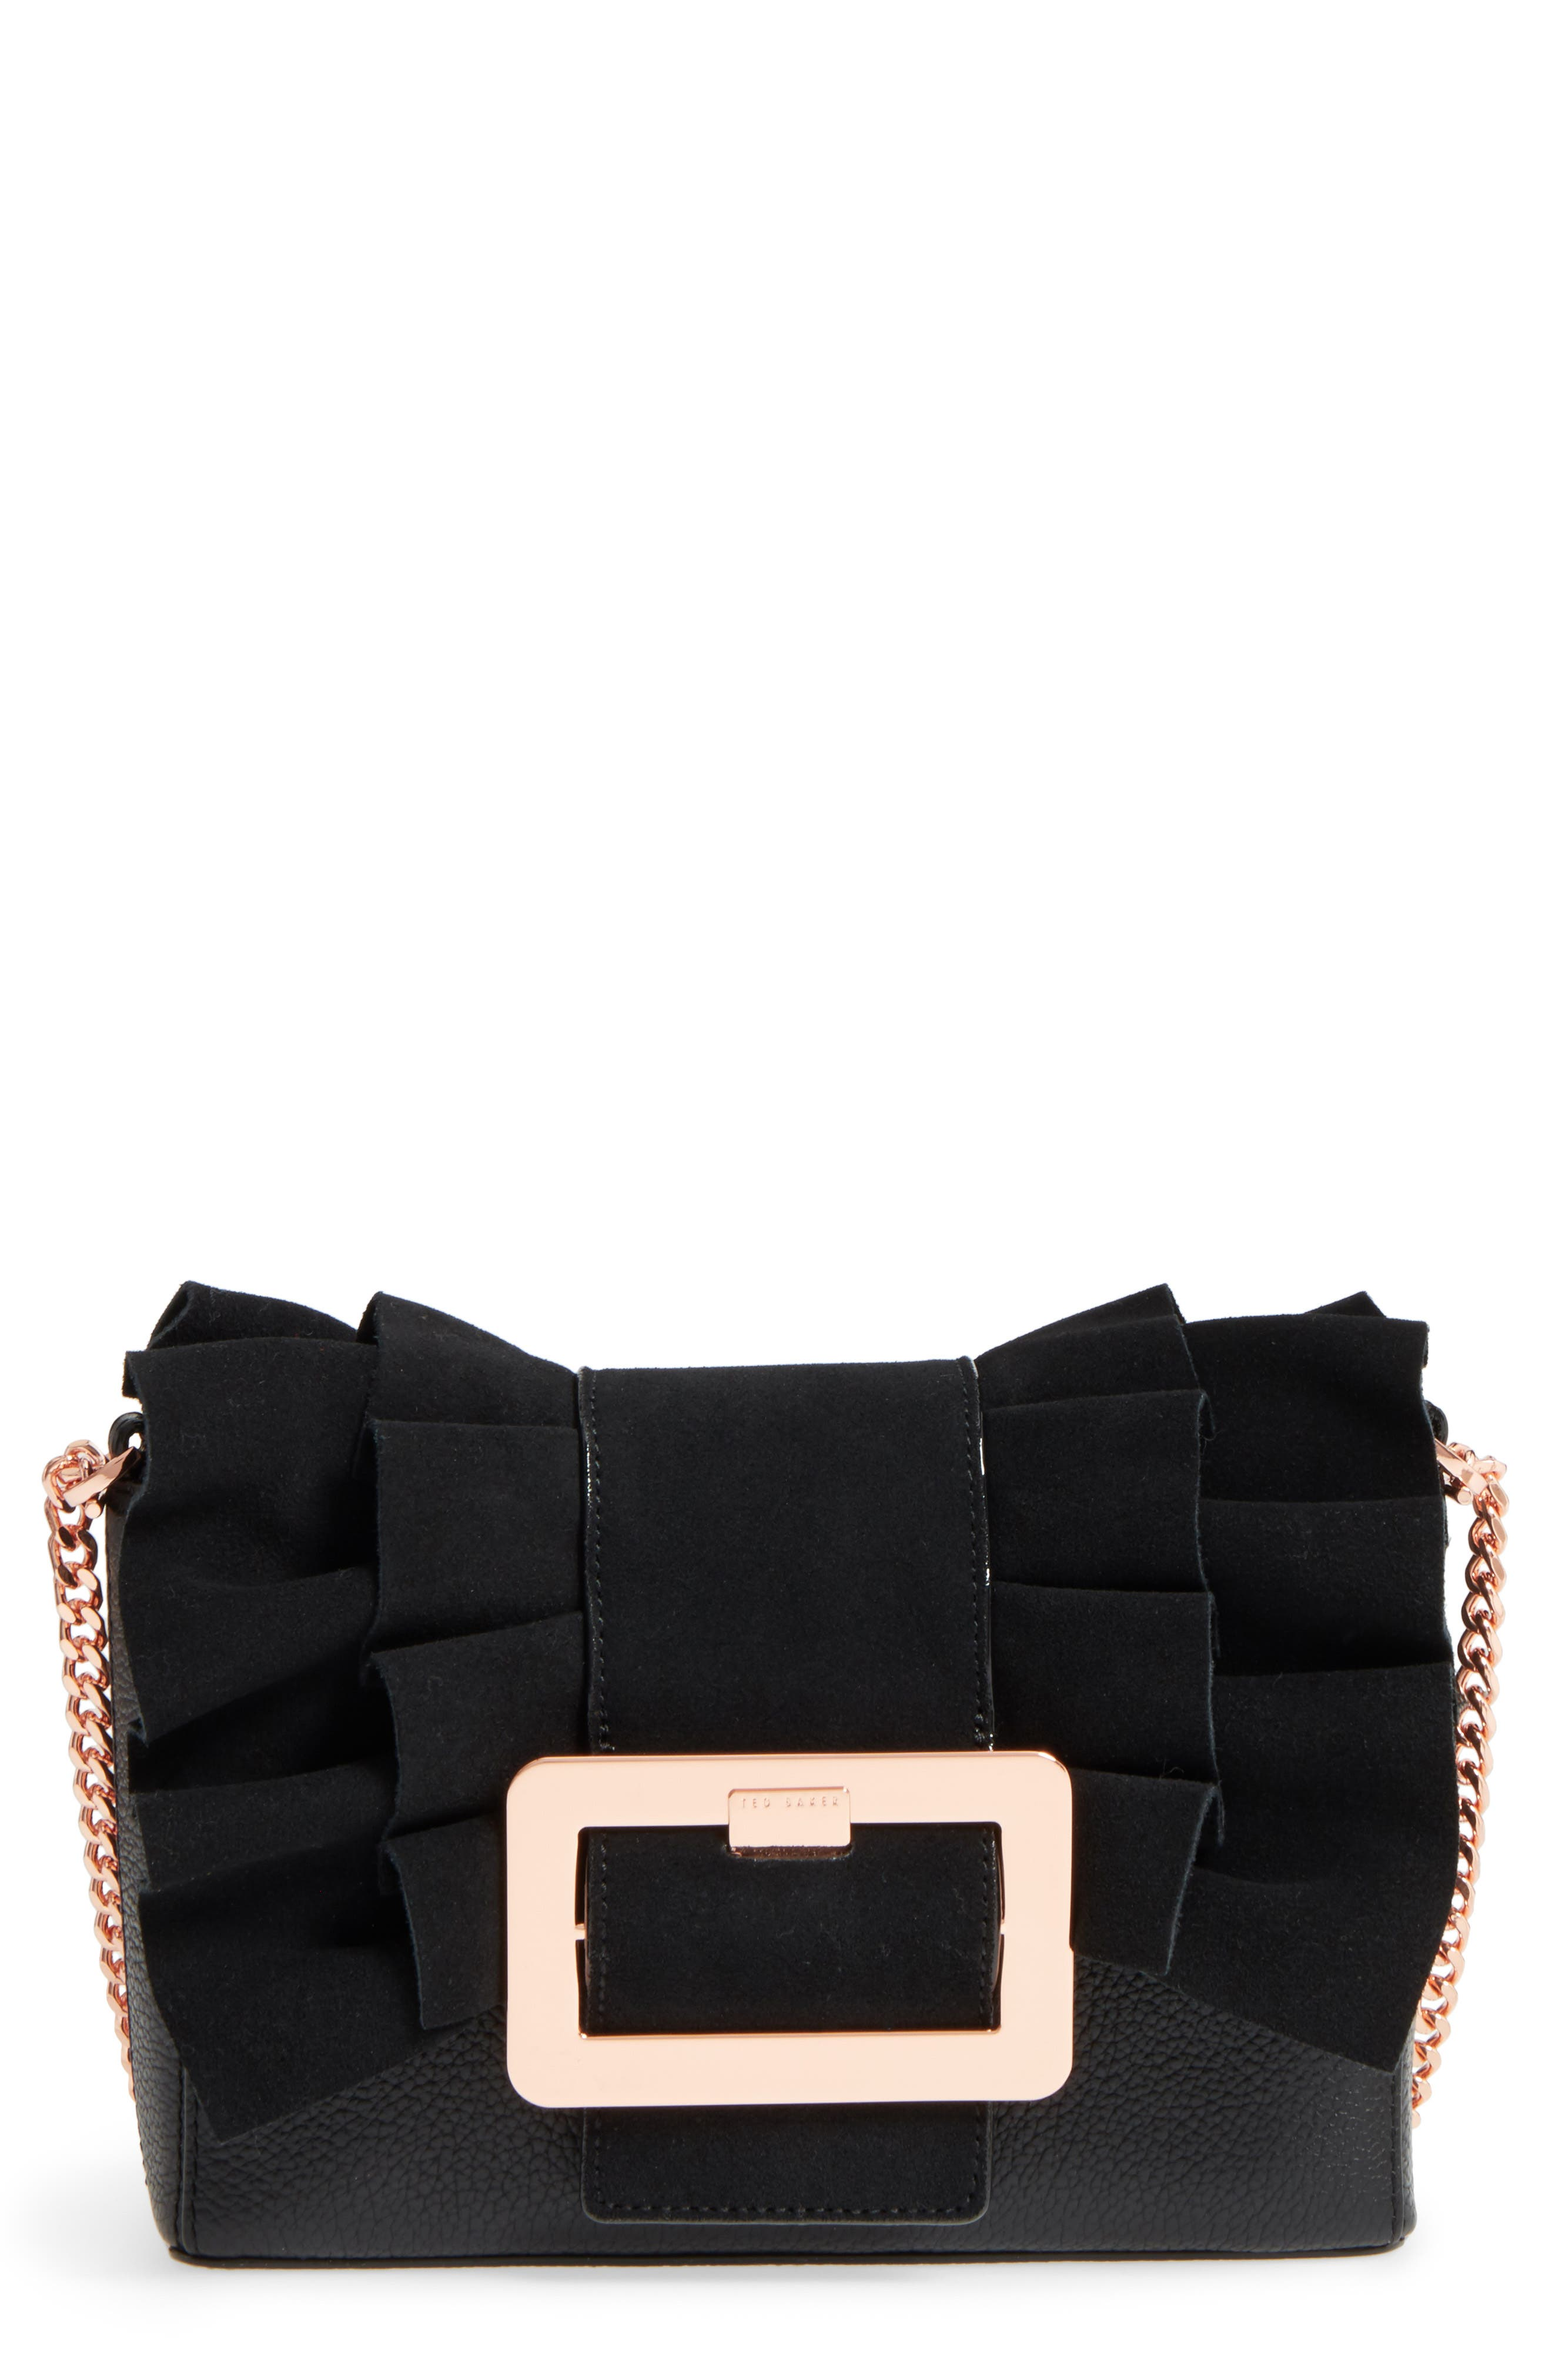 Nerinee Bow Buckle Clutch,                             Main thumbnail 1, color,